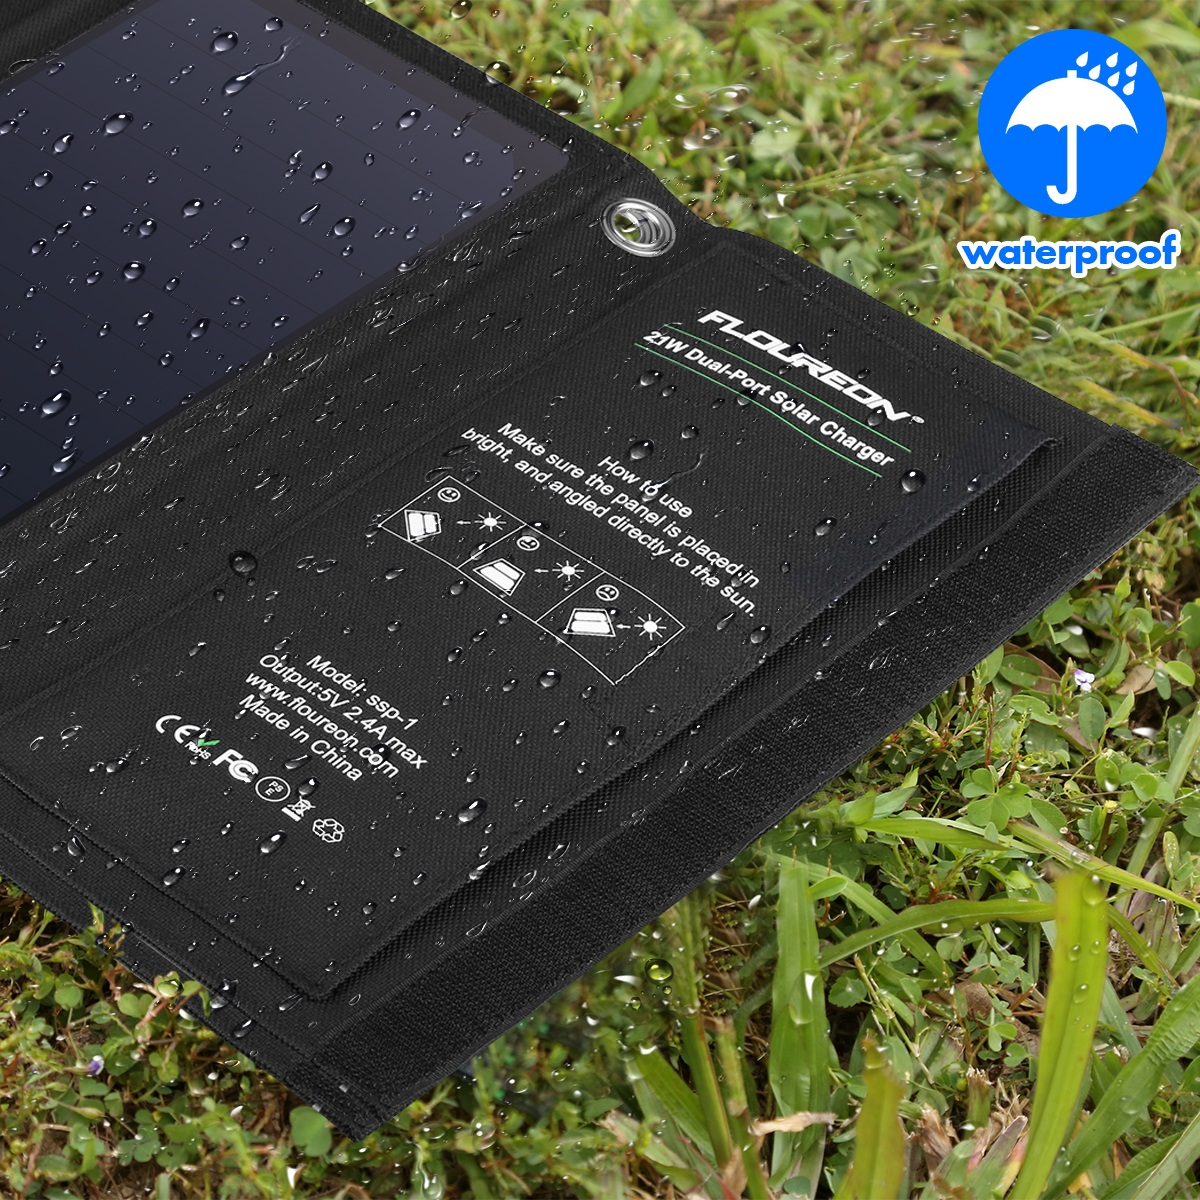 FLOUREON 28W Foldable Waterproof Solar Panel Charger Mobile Power Bank for Smartphones Tablets Triple USB Ports Outdoor 11